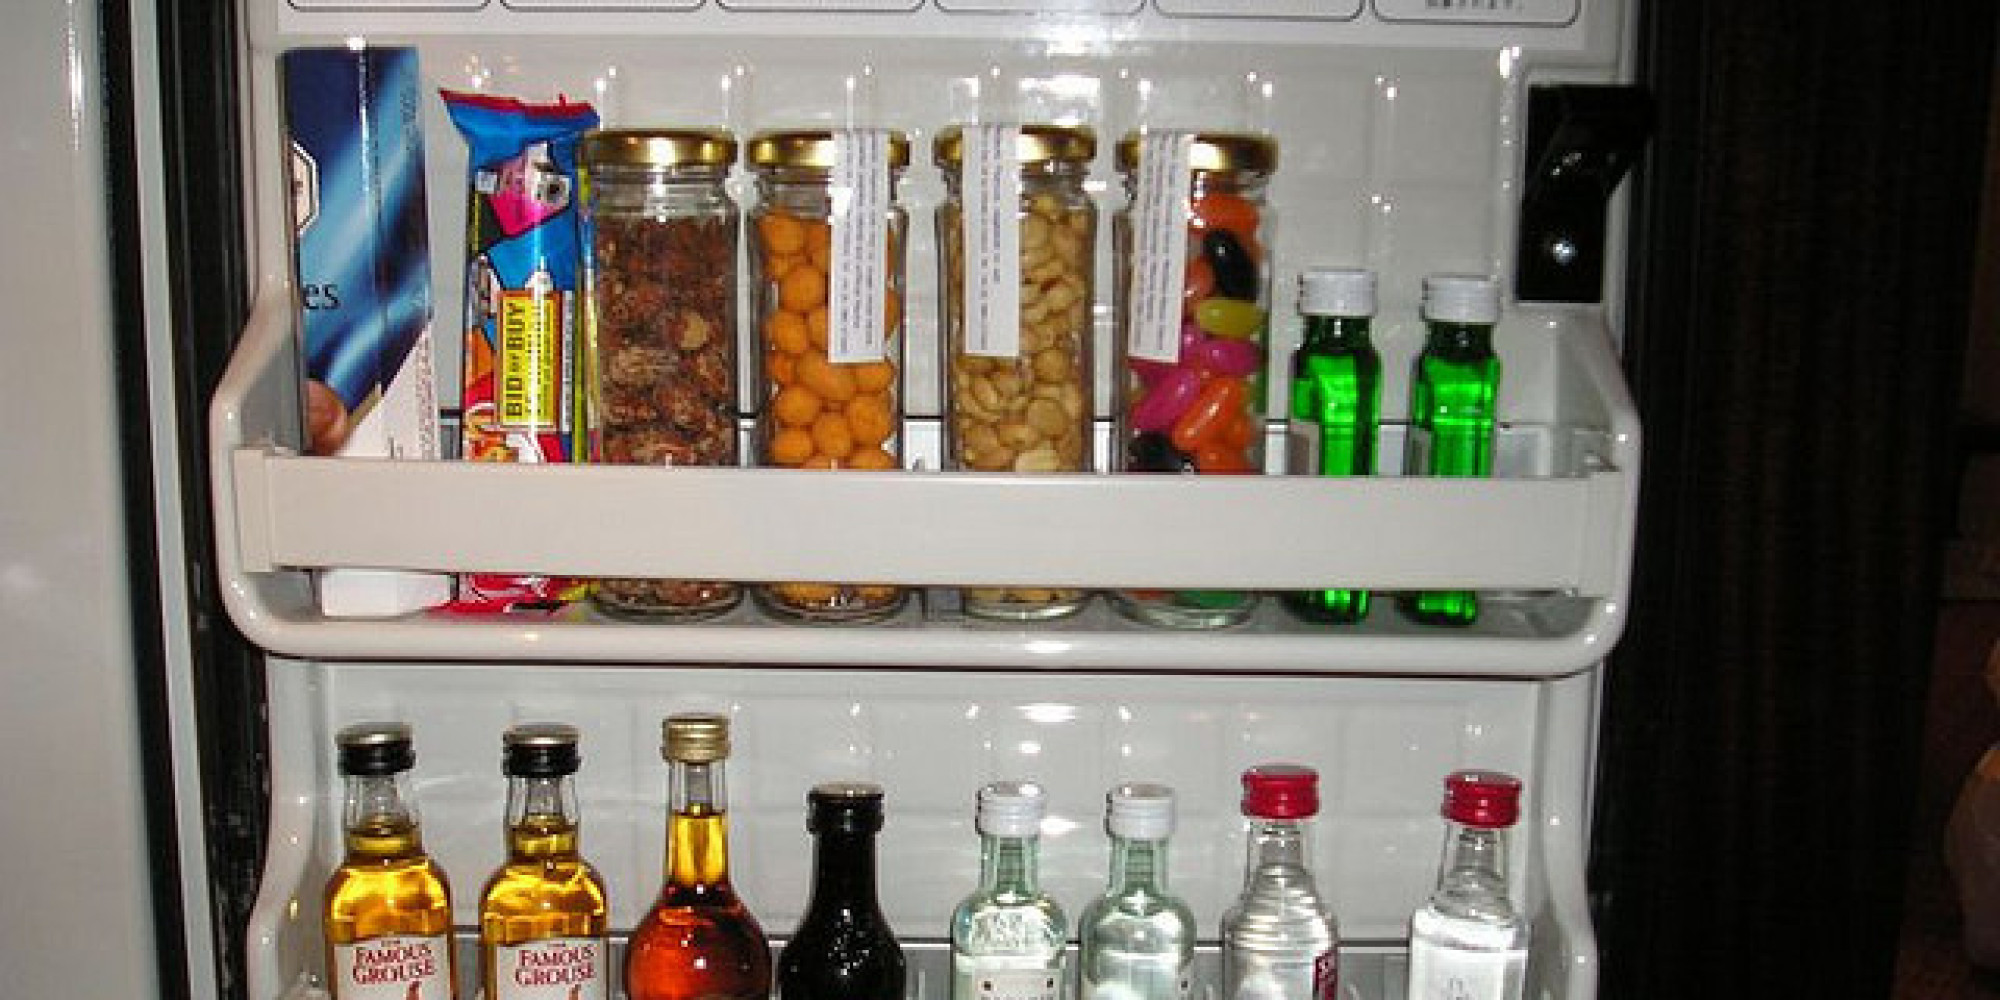 These Mini-Bar Markups Will Make Your Reconsider That M&M